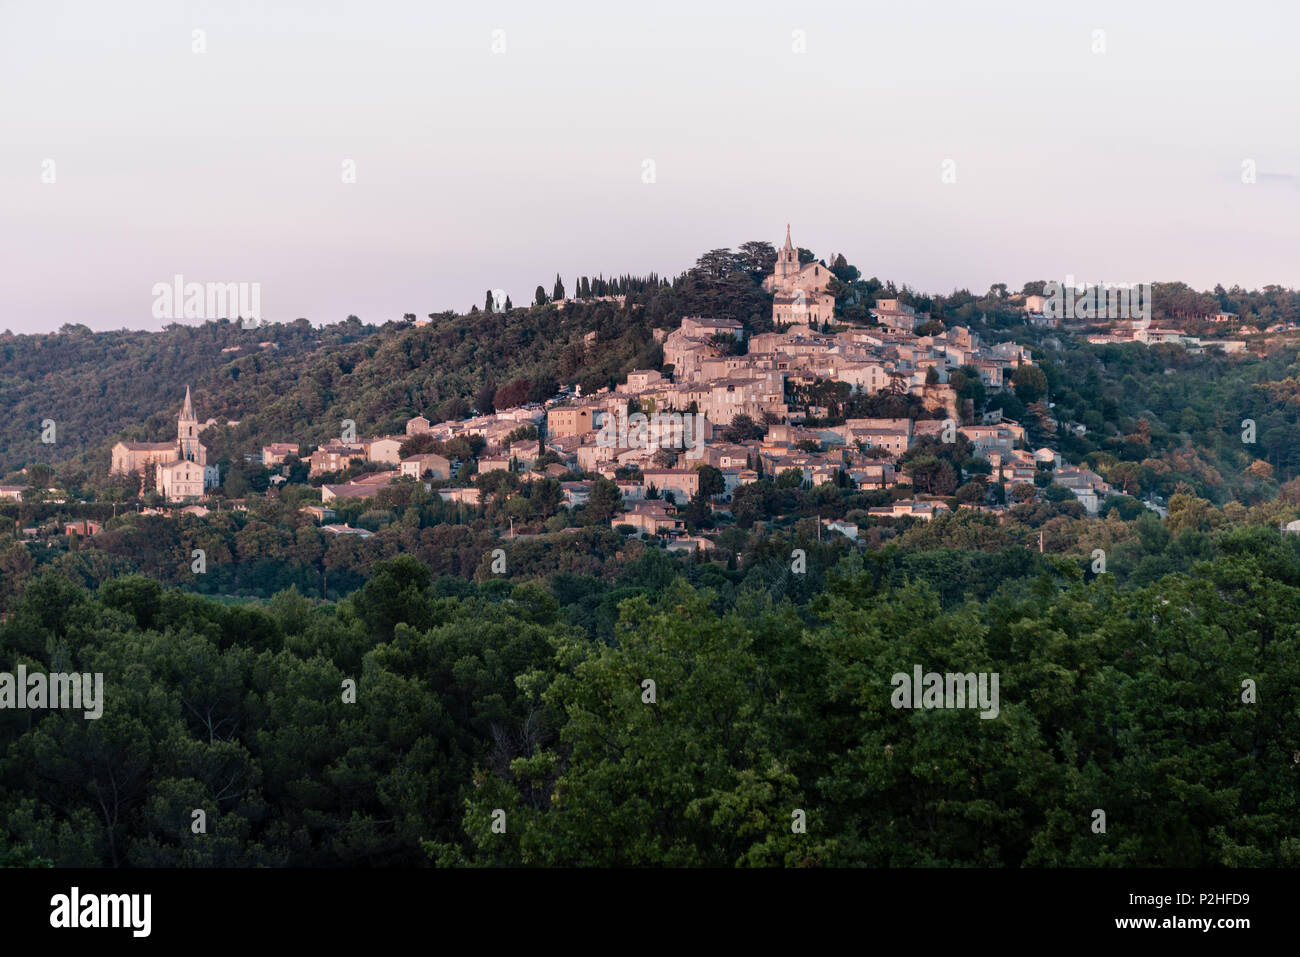 Picturesque scenic of hillside community in Provence (possibly Luberon) - Stock Image